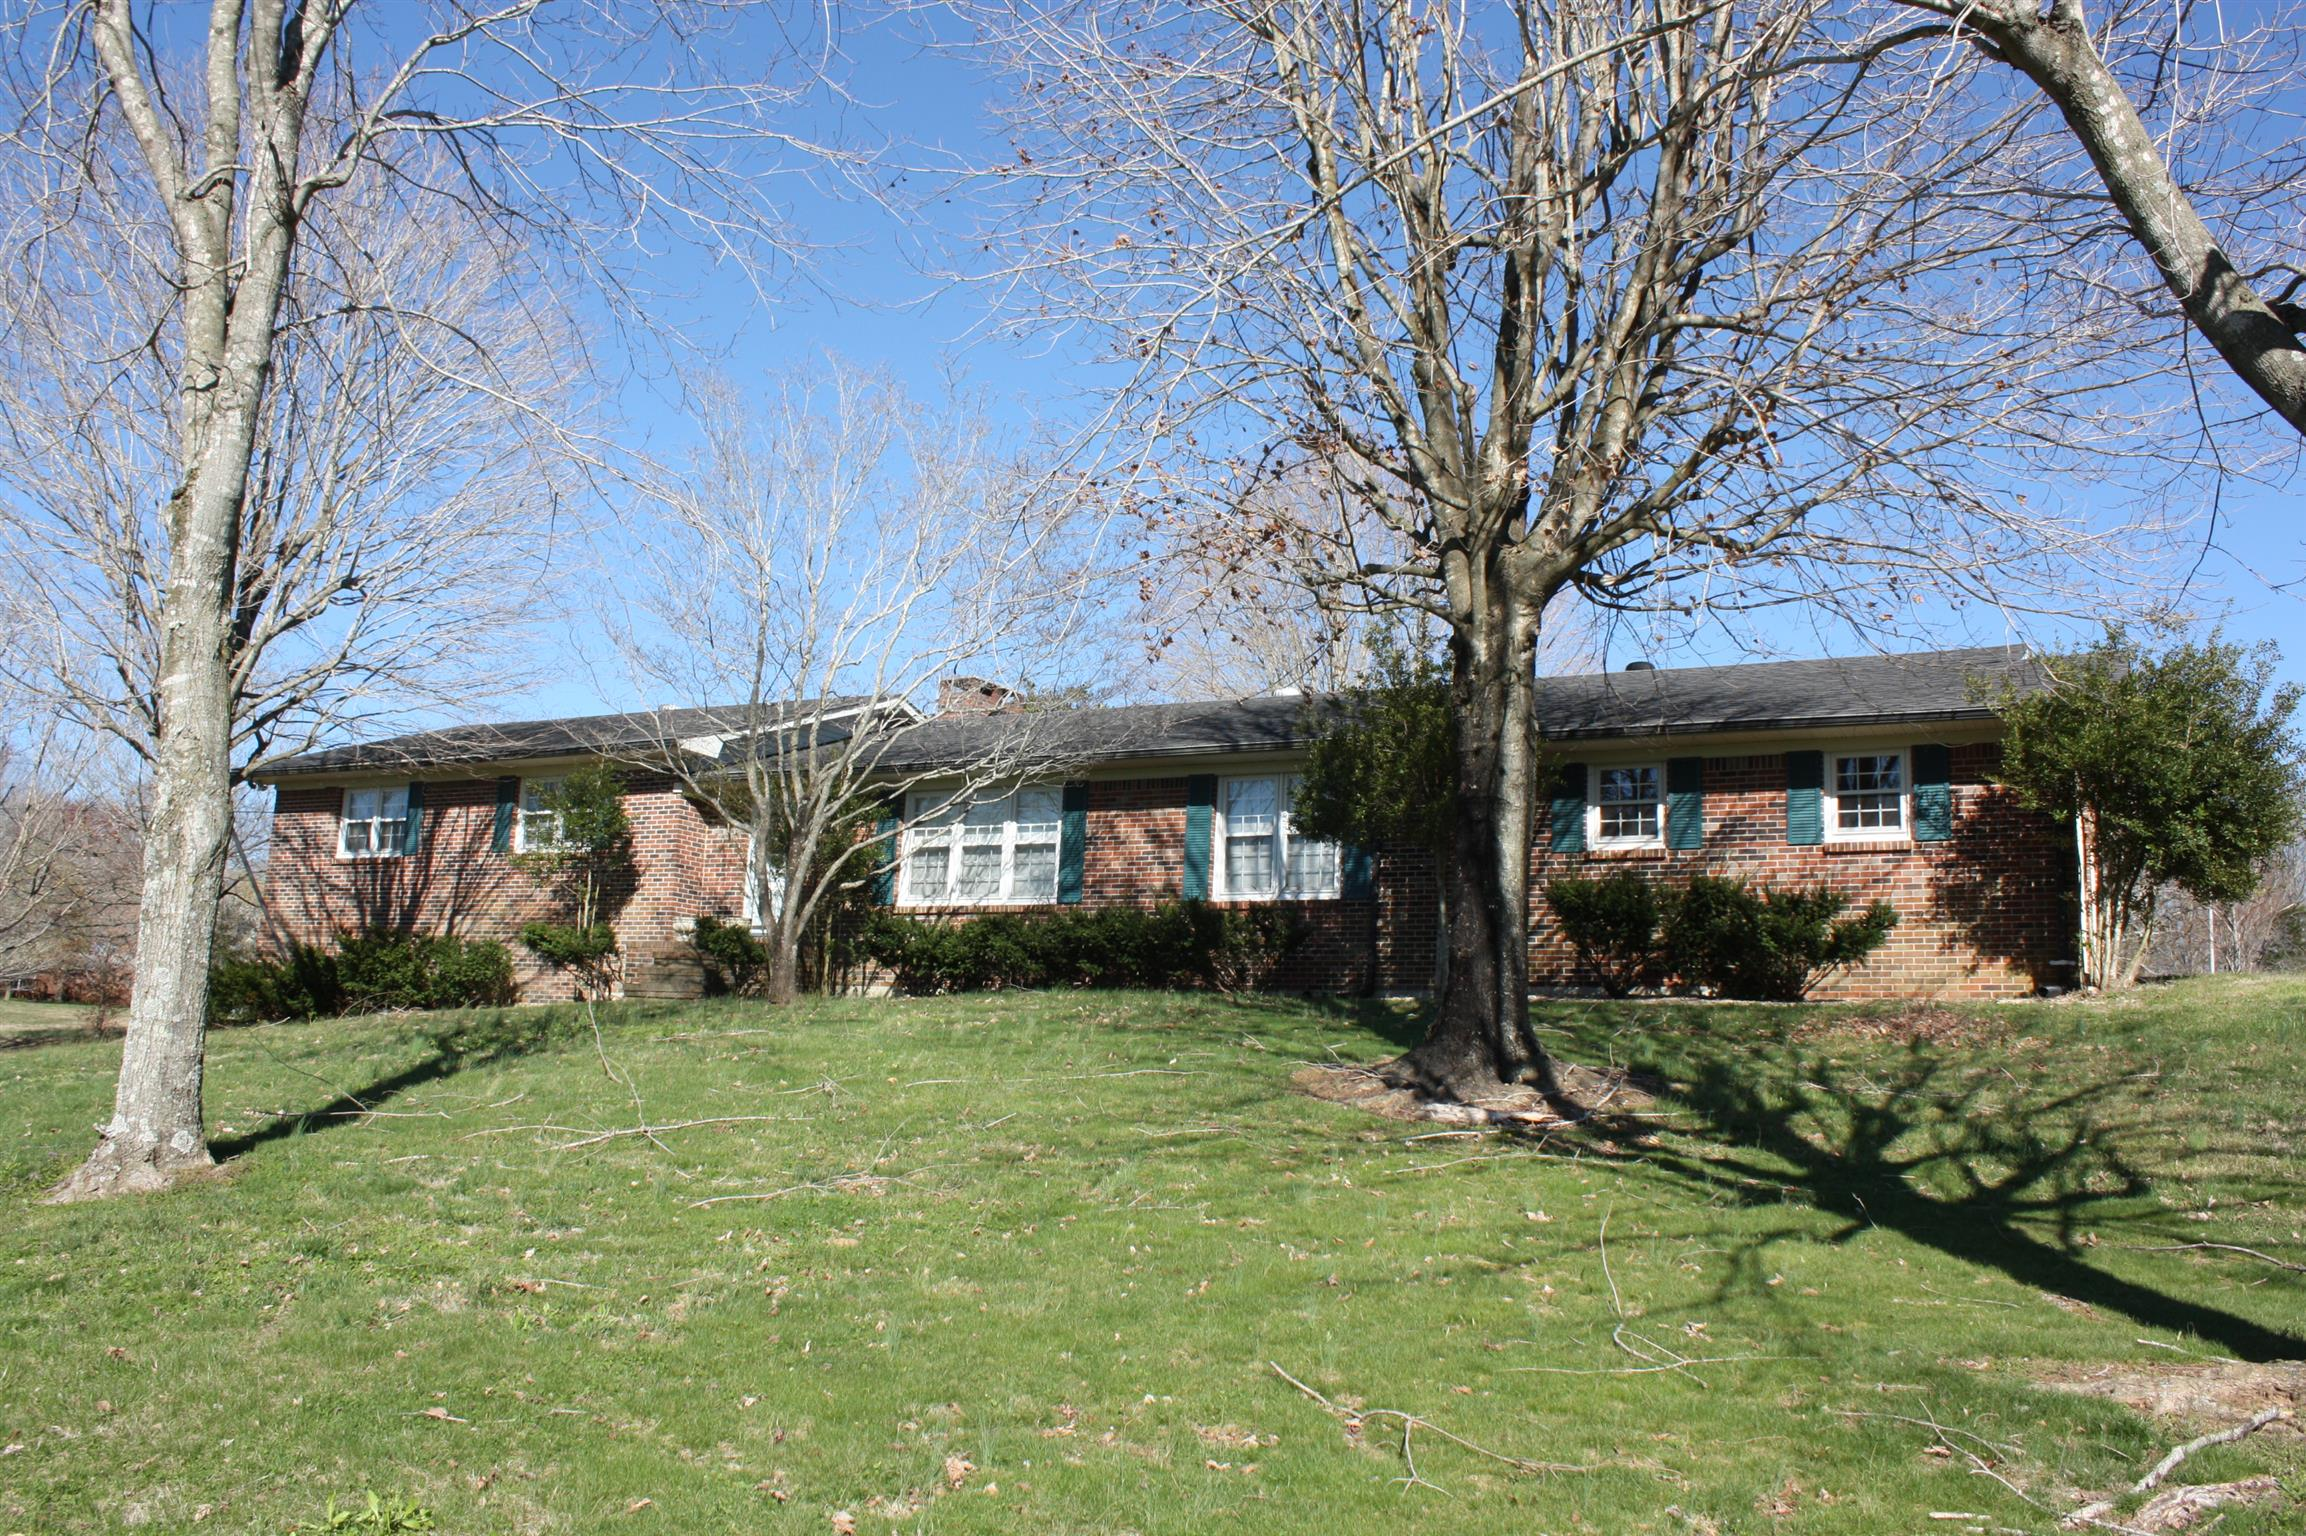 8910 Smithville Hwy, McMinnville, TN 37110 - McMinnville, TN real estate listing